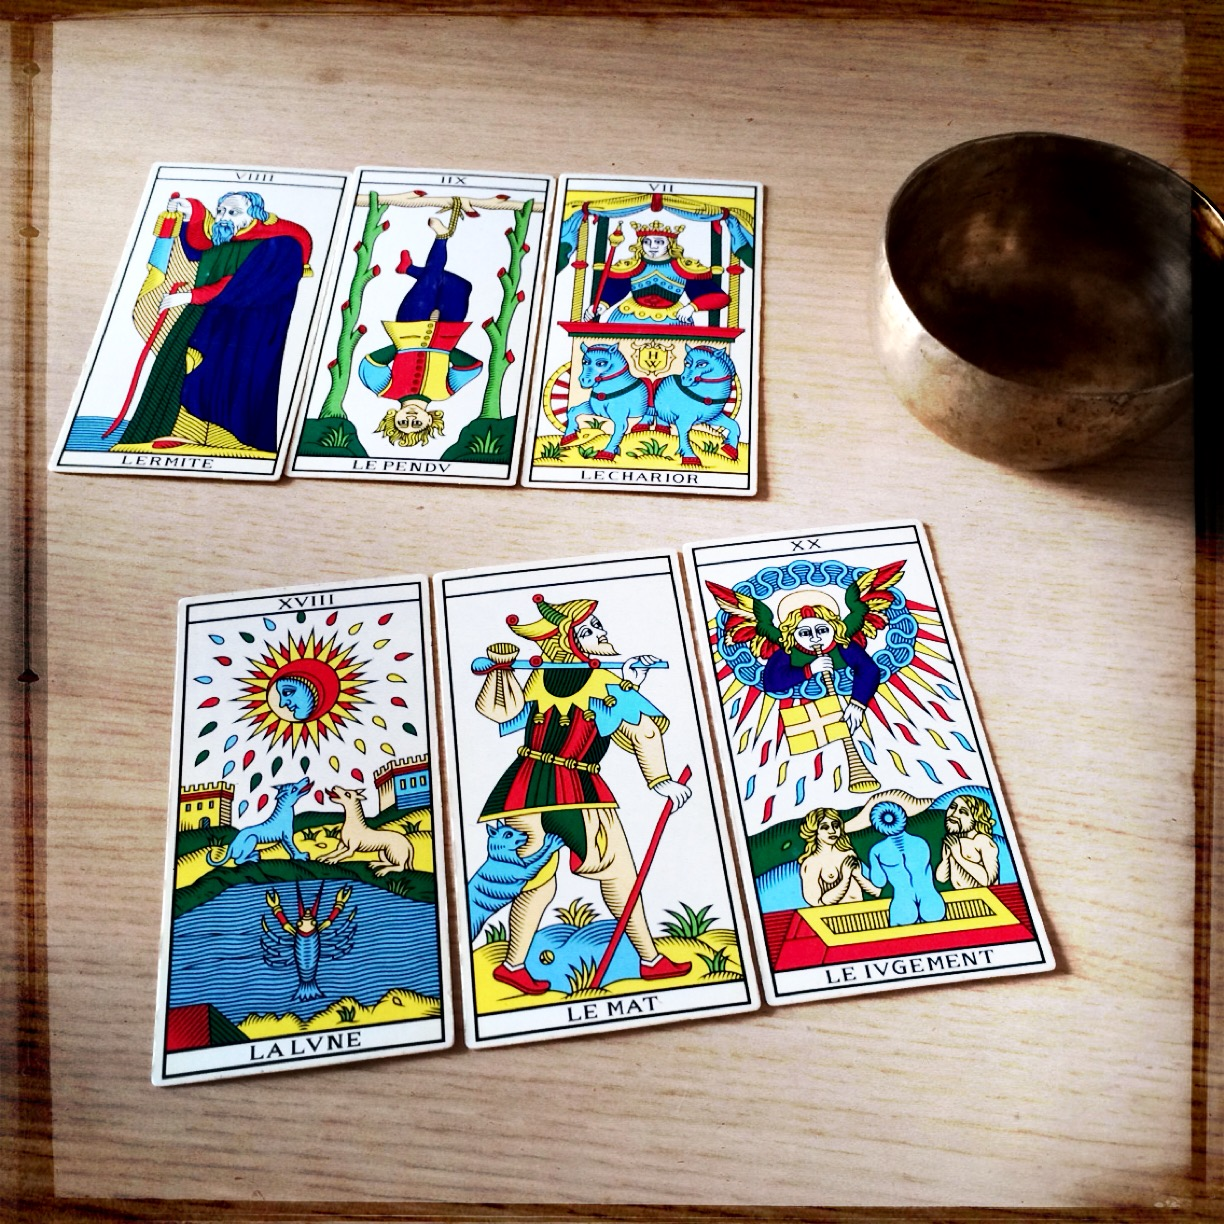 Millenium Marseille Tarot, as reconstructed by Wilfried Houdoin (Photo: Camelia Elias)